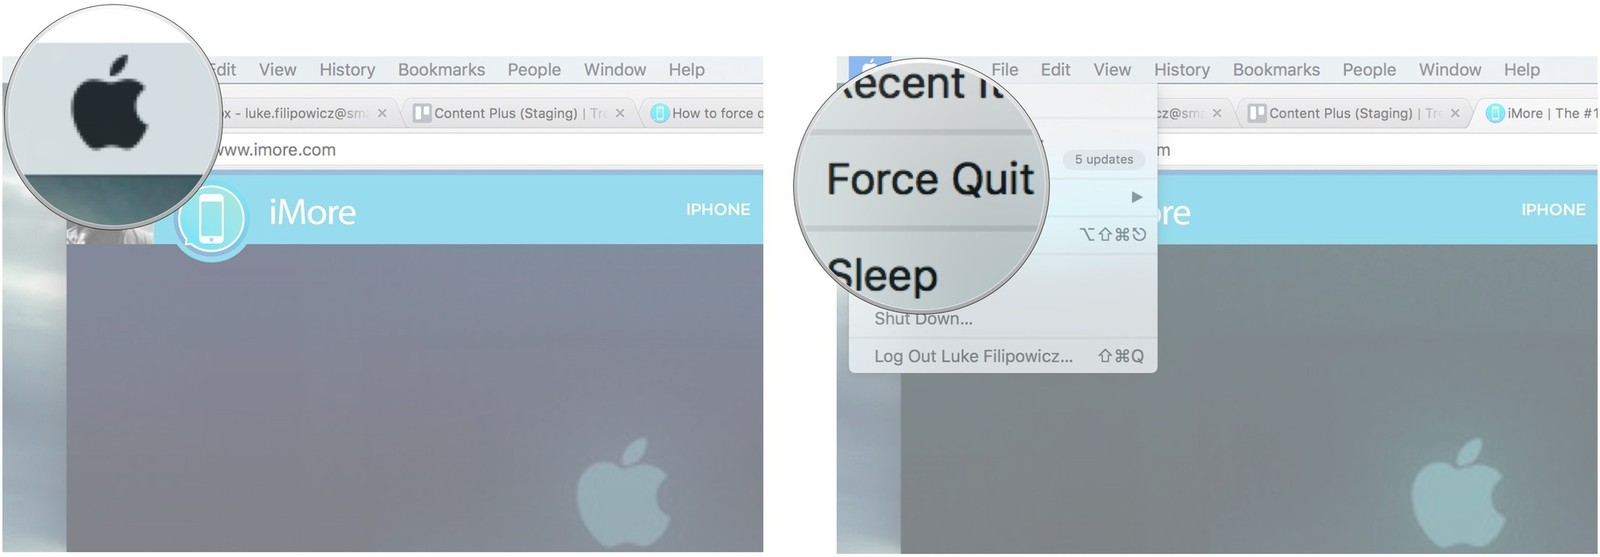 How to force quit an app or program on Mac | iMore